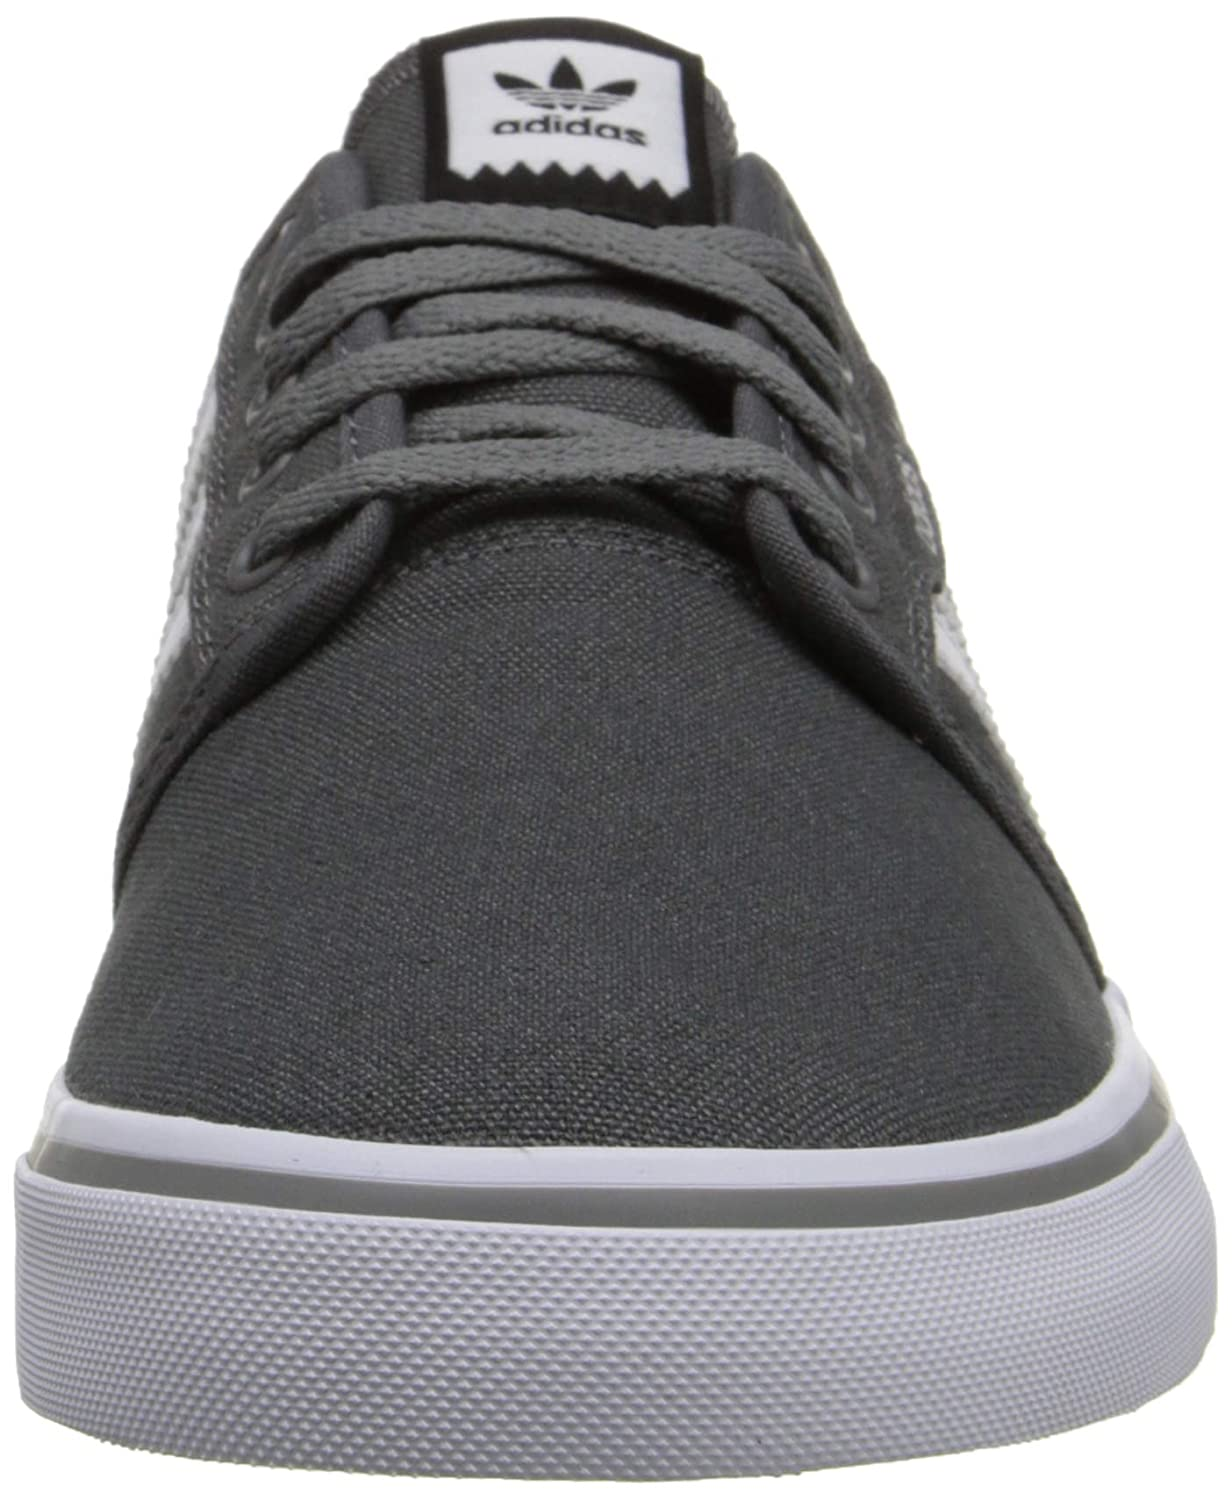 promo code 921af ec2cd Amazon.com   adidas Men s Seeley Skate Shoe   Shoes